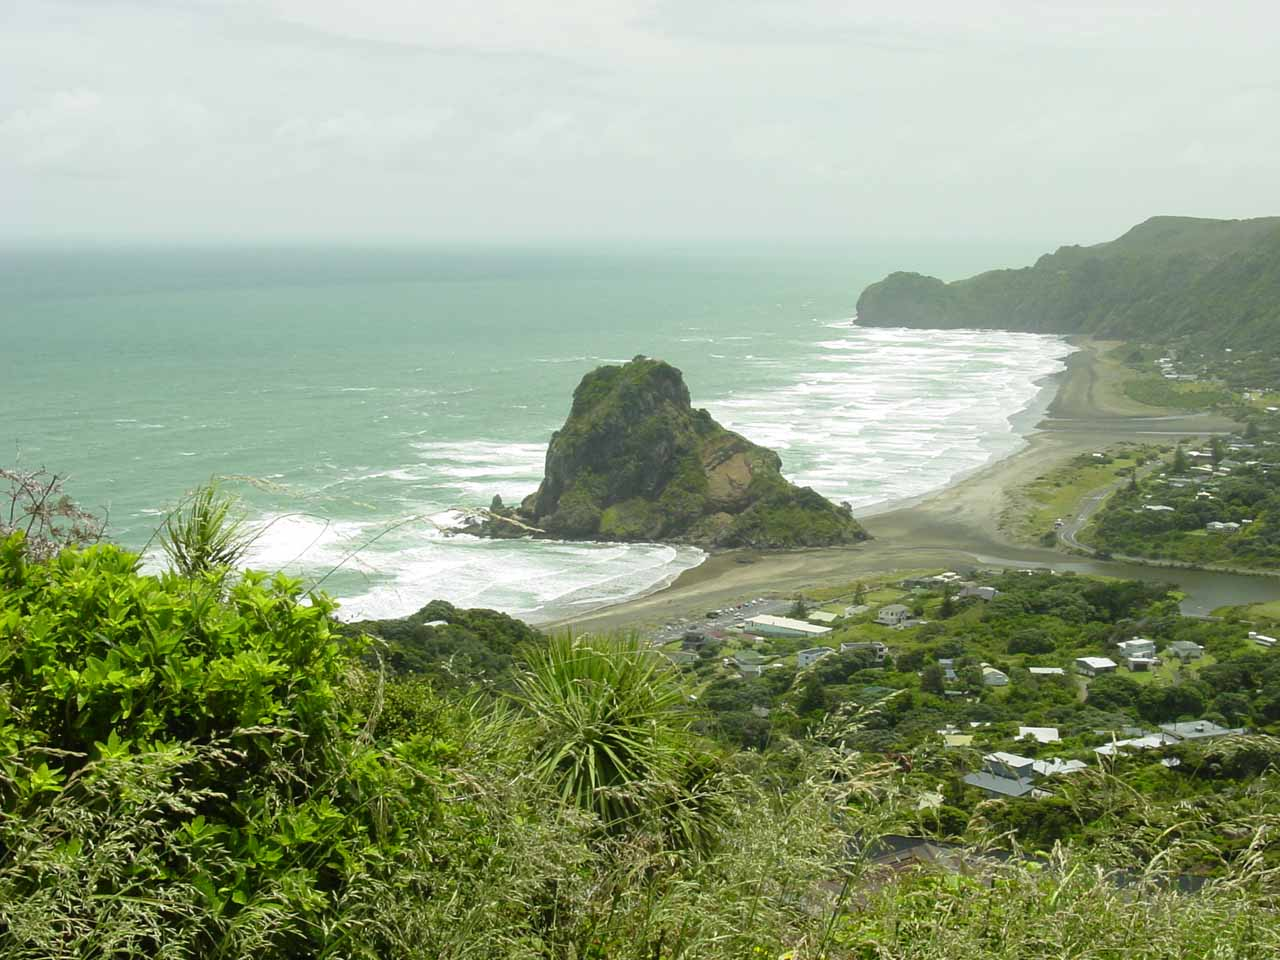 Heading down to Piha Beach from Piha Rd as seen back in December 2004